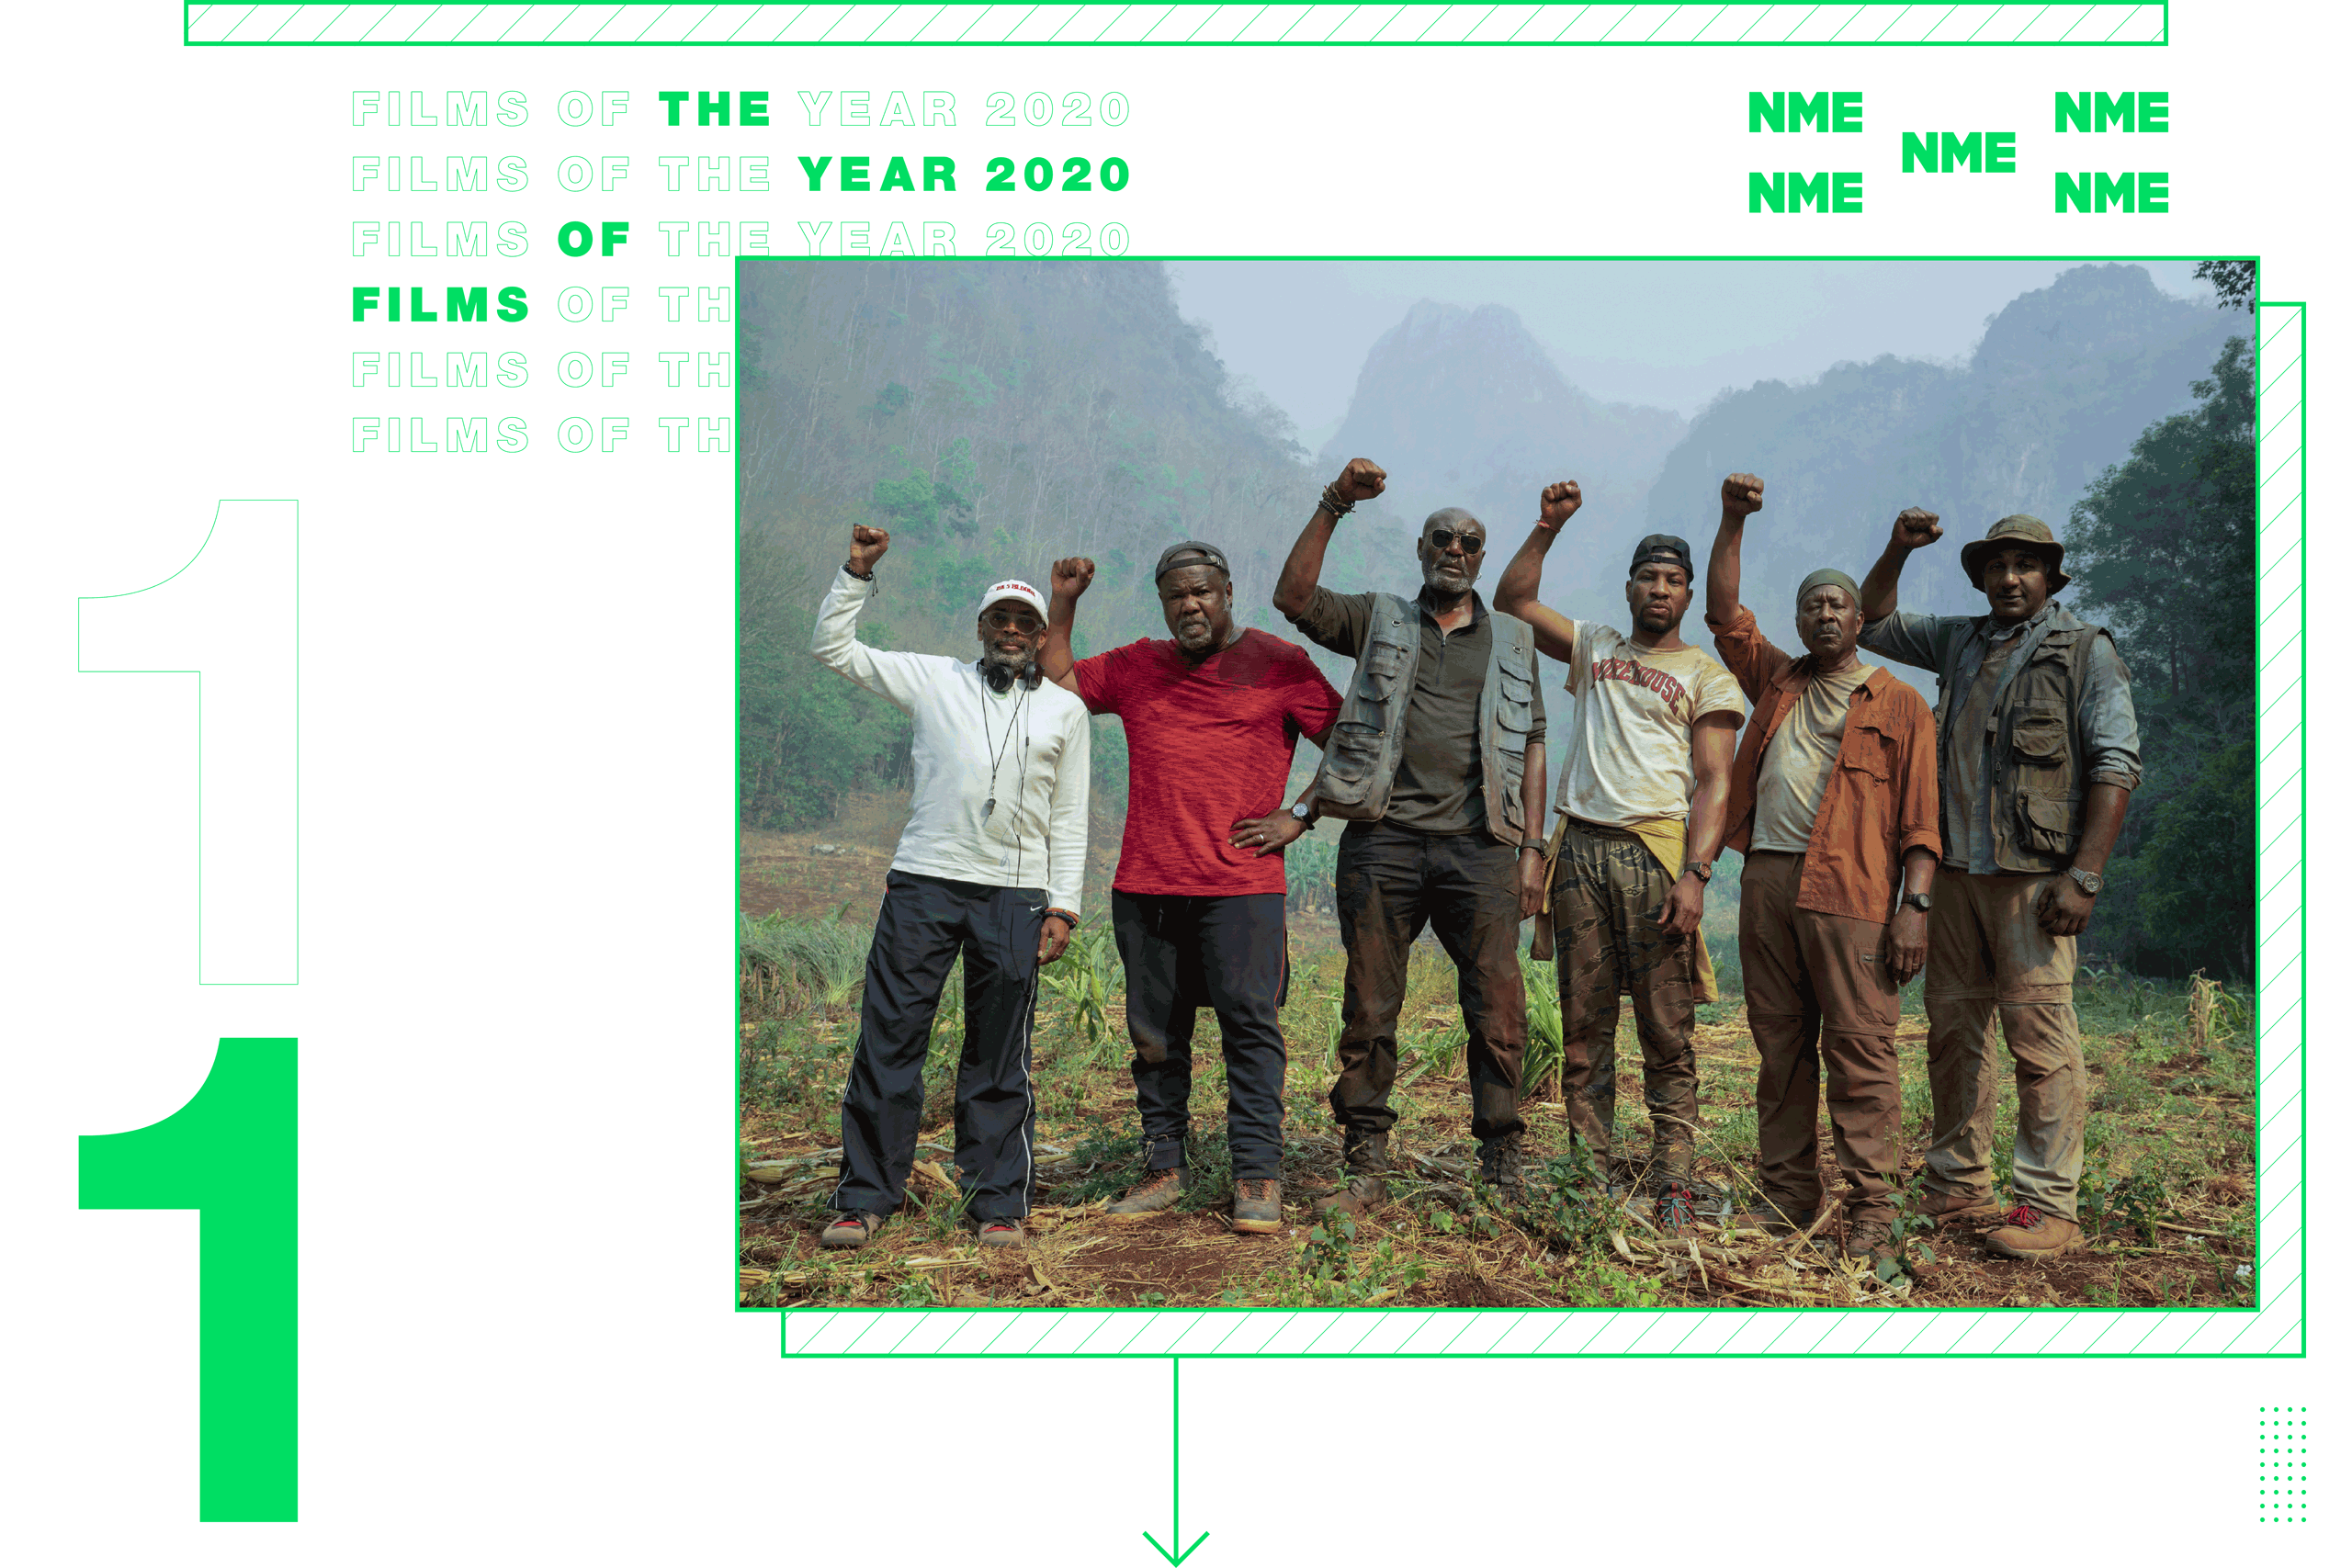 NME Global Films of the Year Da 5 Bloods